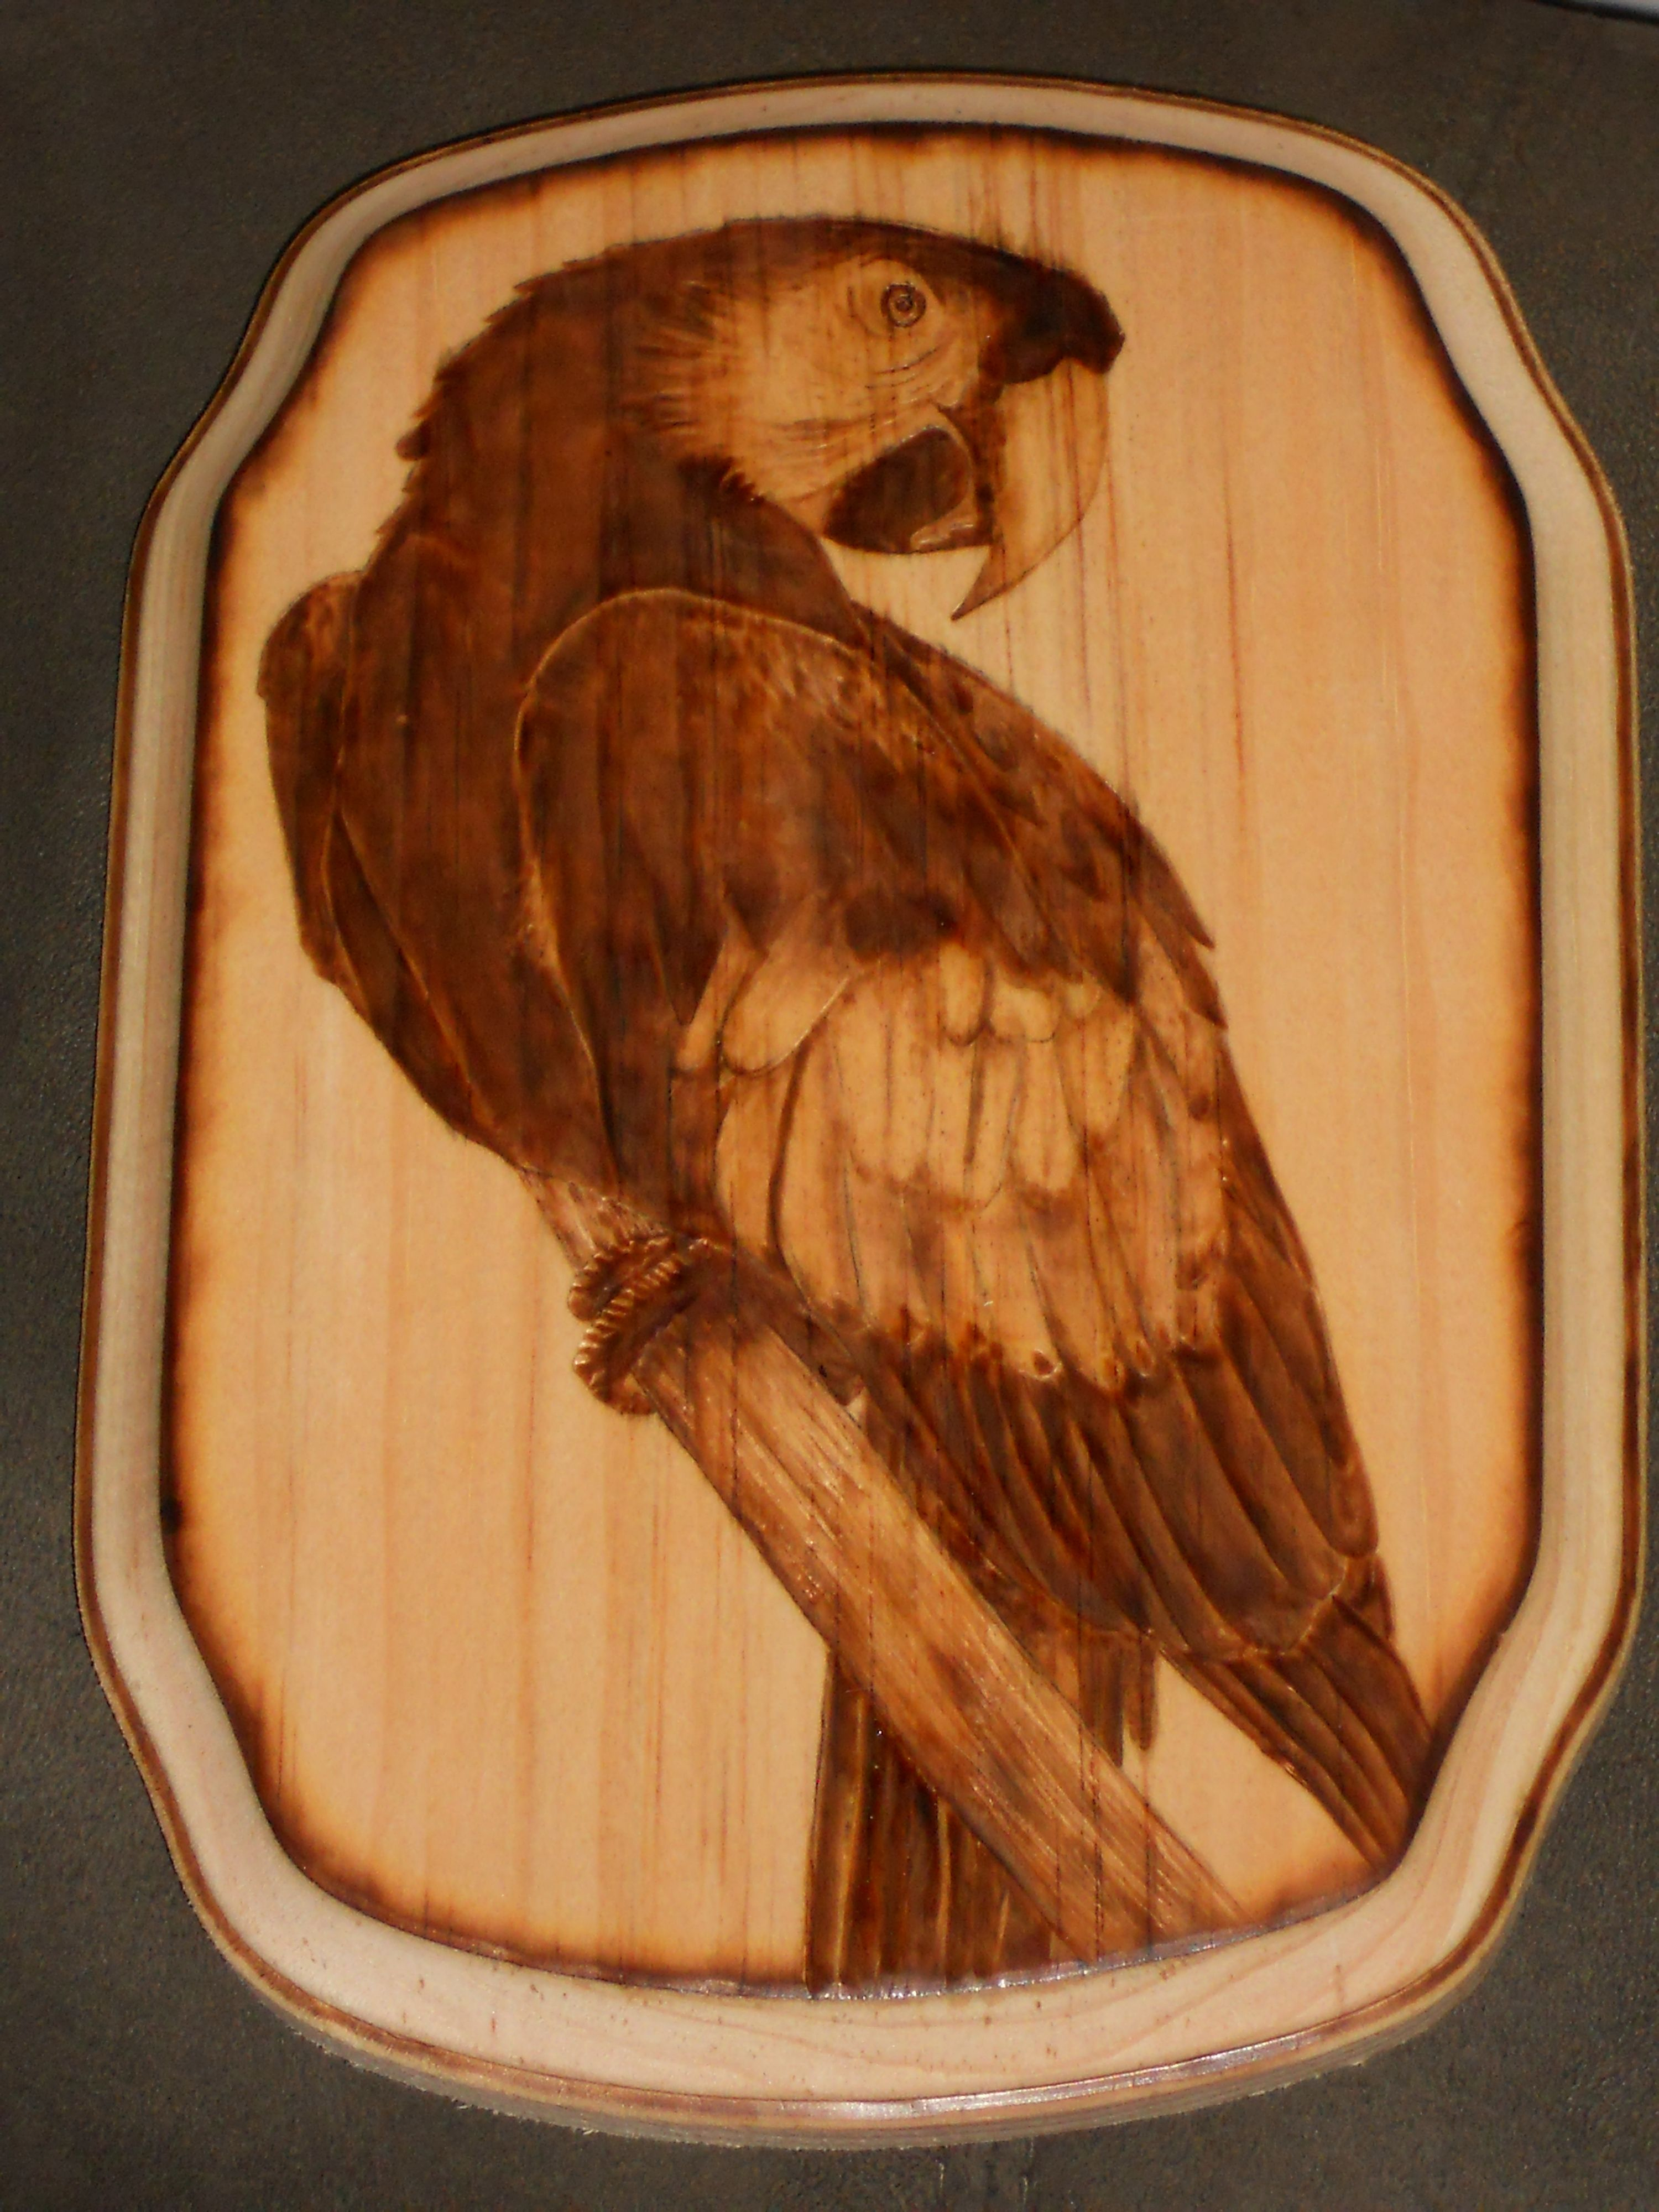 Wood burned art by Colleen Jess  Parrot  http://www.facebook.com/pages/Great-Jesspectations/87931702513